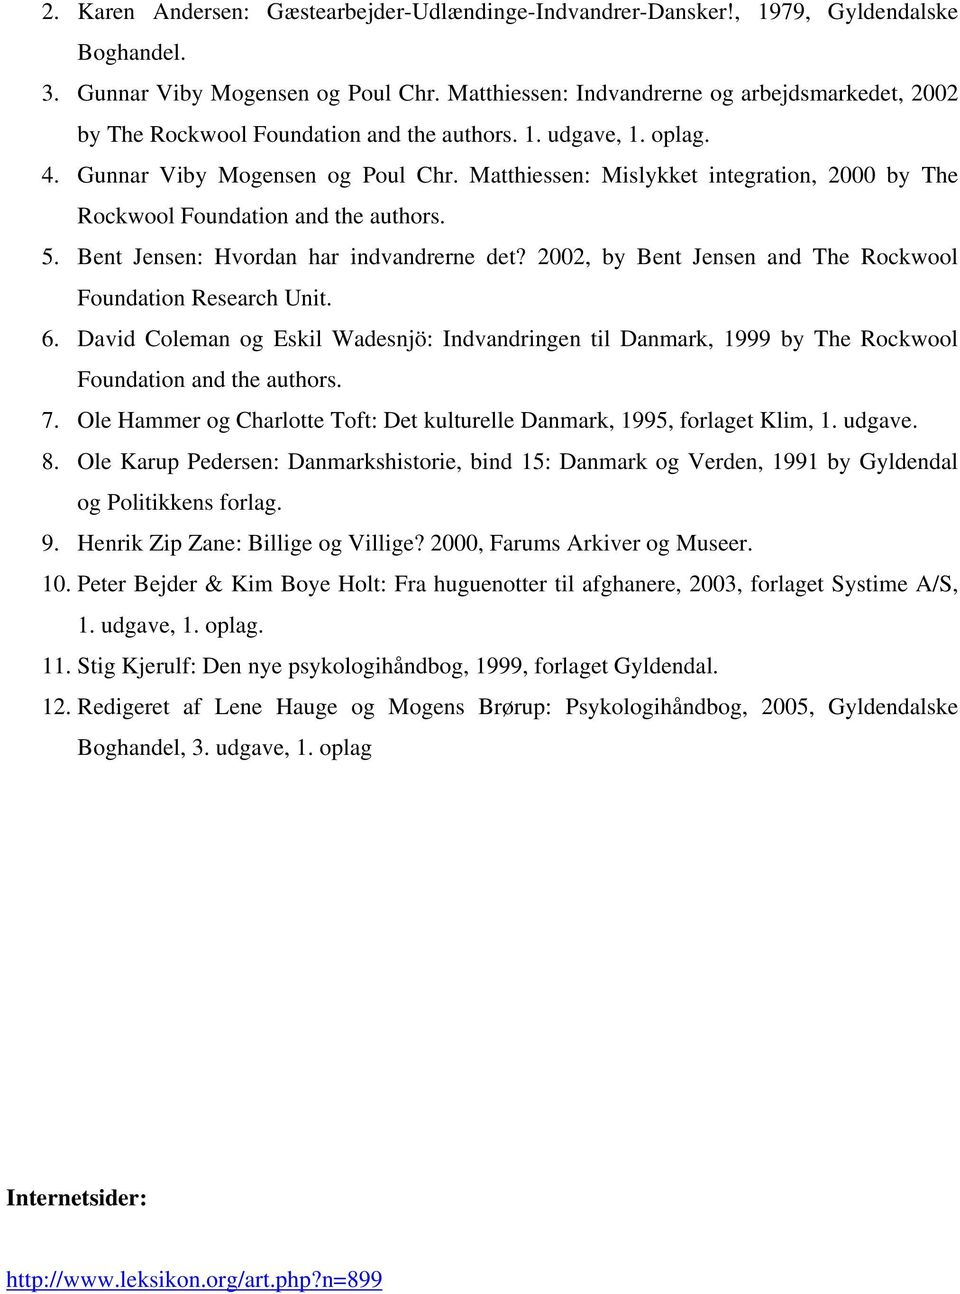 Matthiessen: Mislykket integration, 2000 by The Rockwool Foundation and the authors. 5. Bent Jensen: Hvordan har indvandrerne det? 2002, by Bent Jensen and The Rockwool Foundation Research Unit. 6.